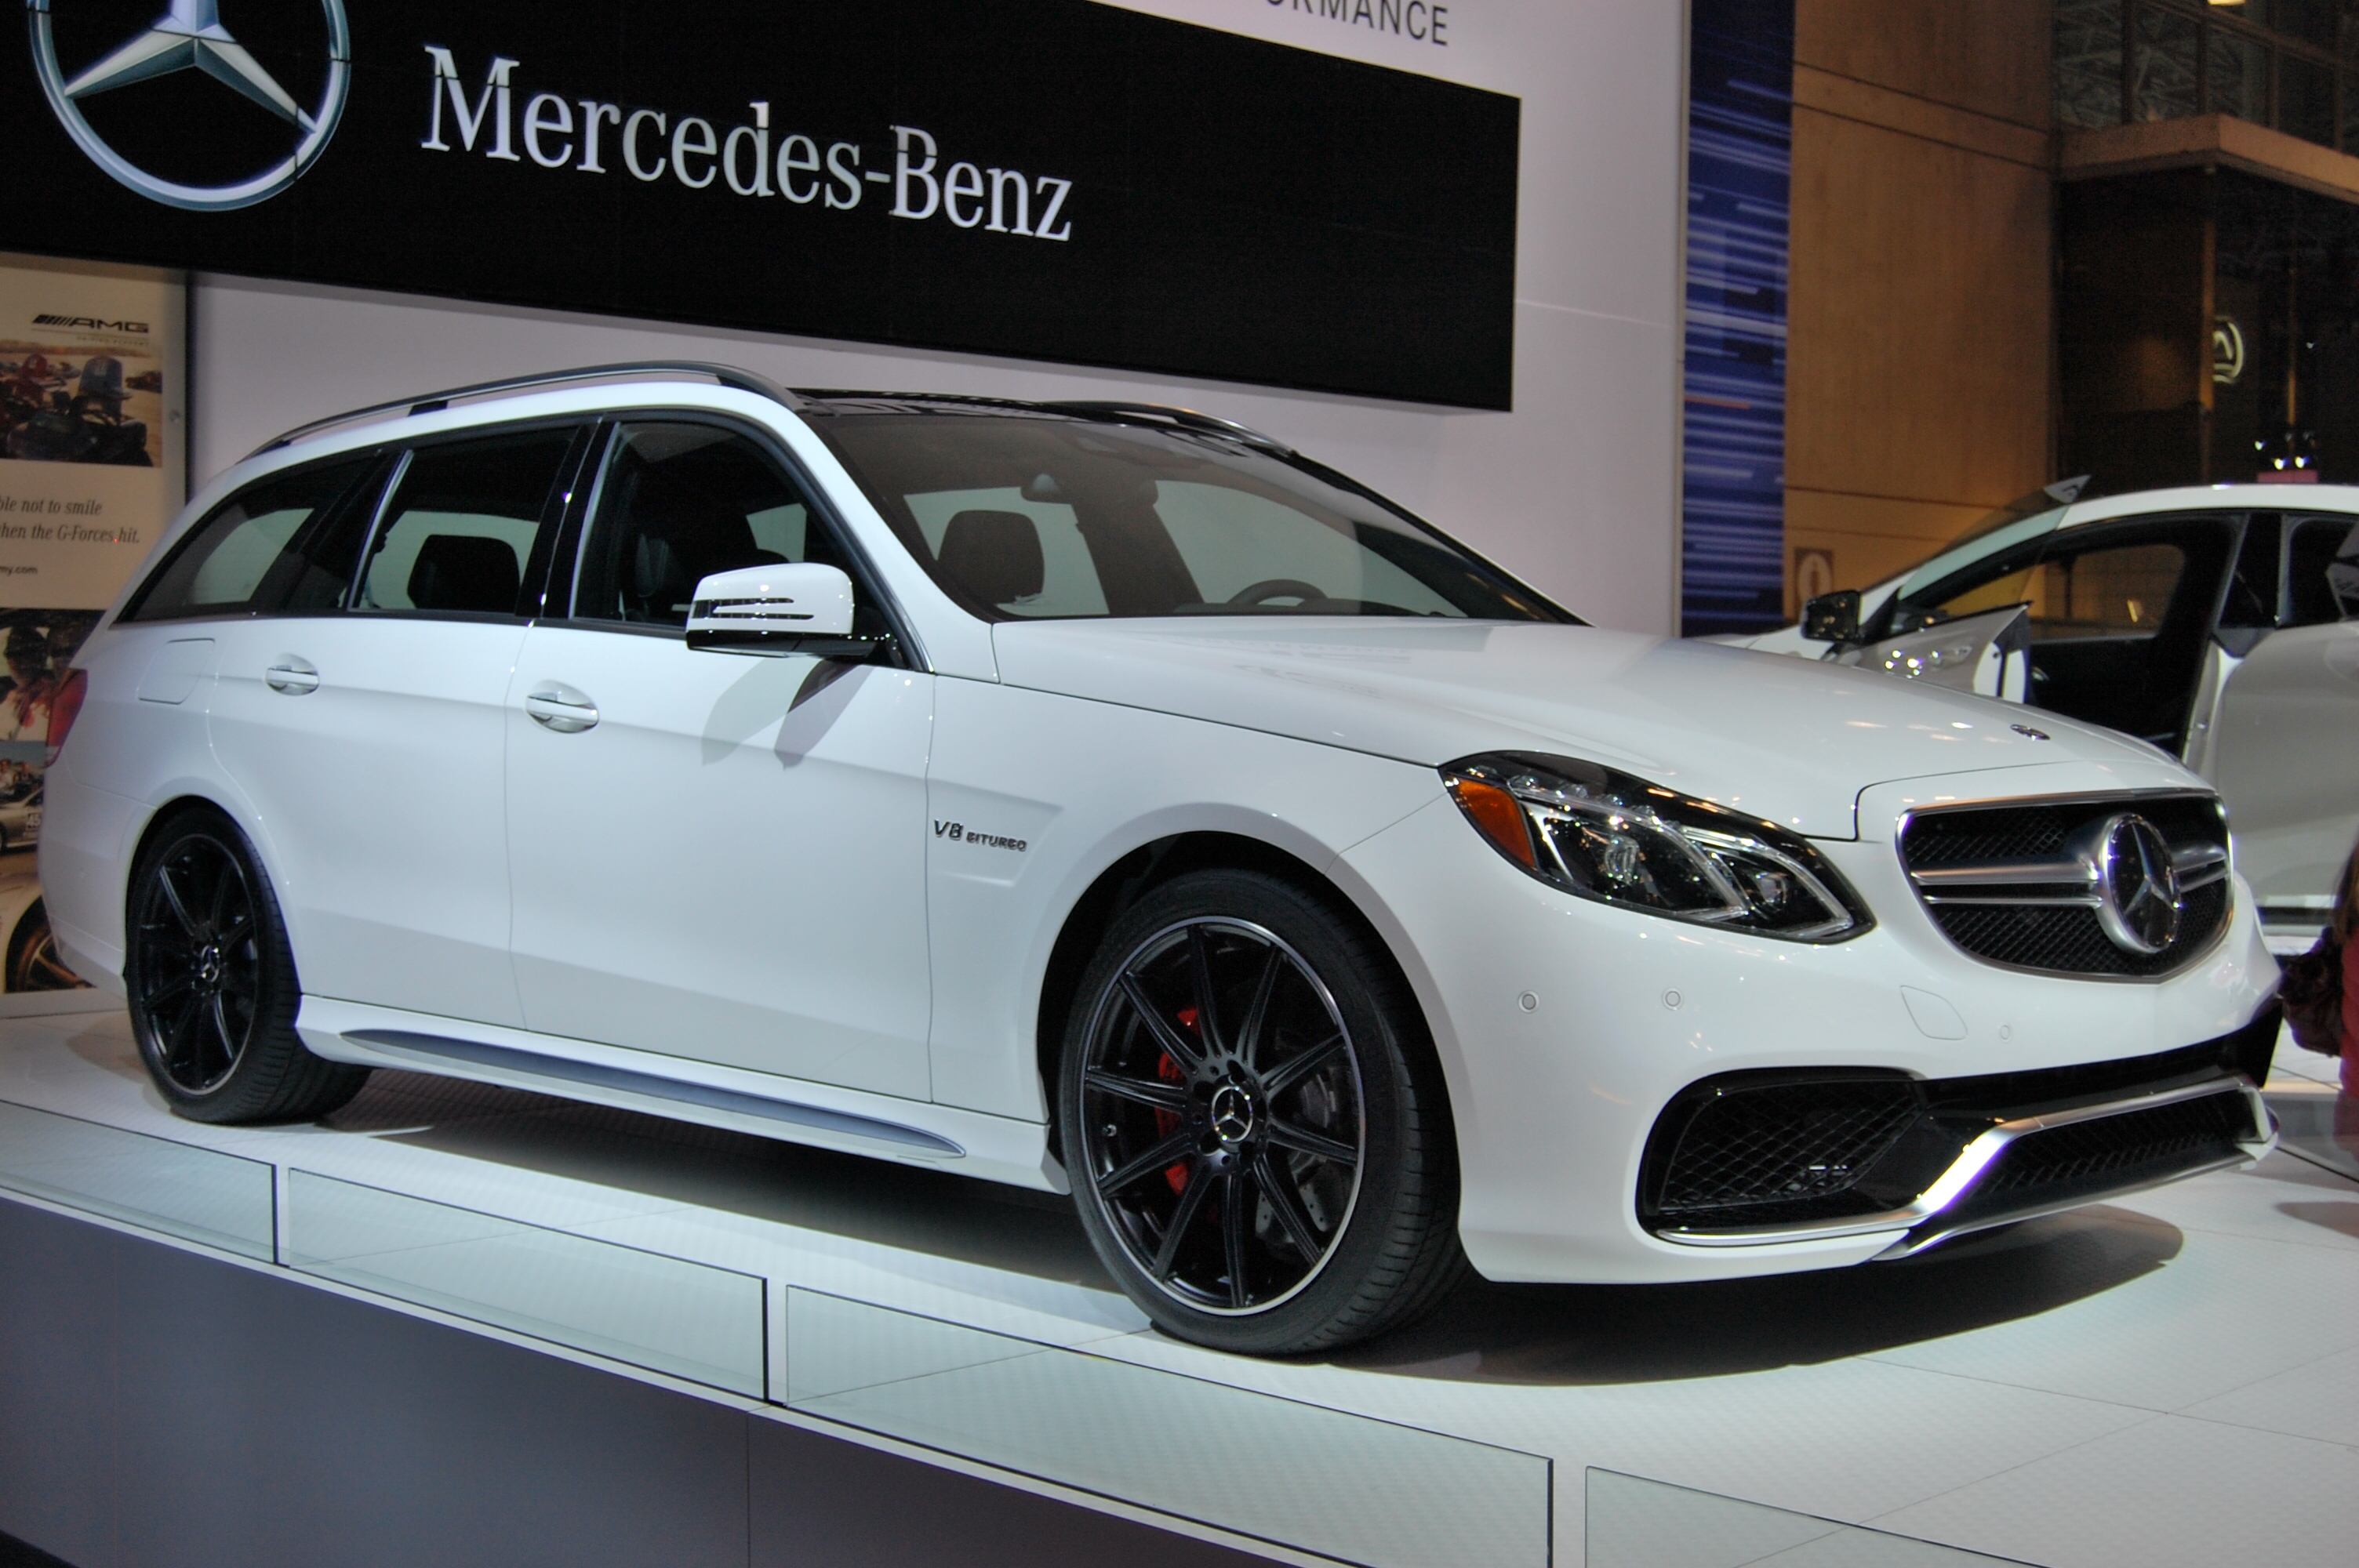 2014 mercedes benz e63 amg s model 4matic ii by for 2014 mercedes benz e63 amg 4matic